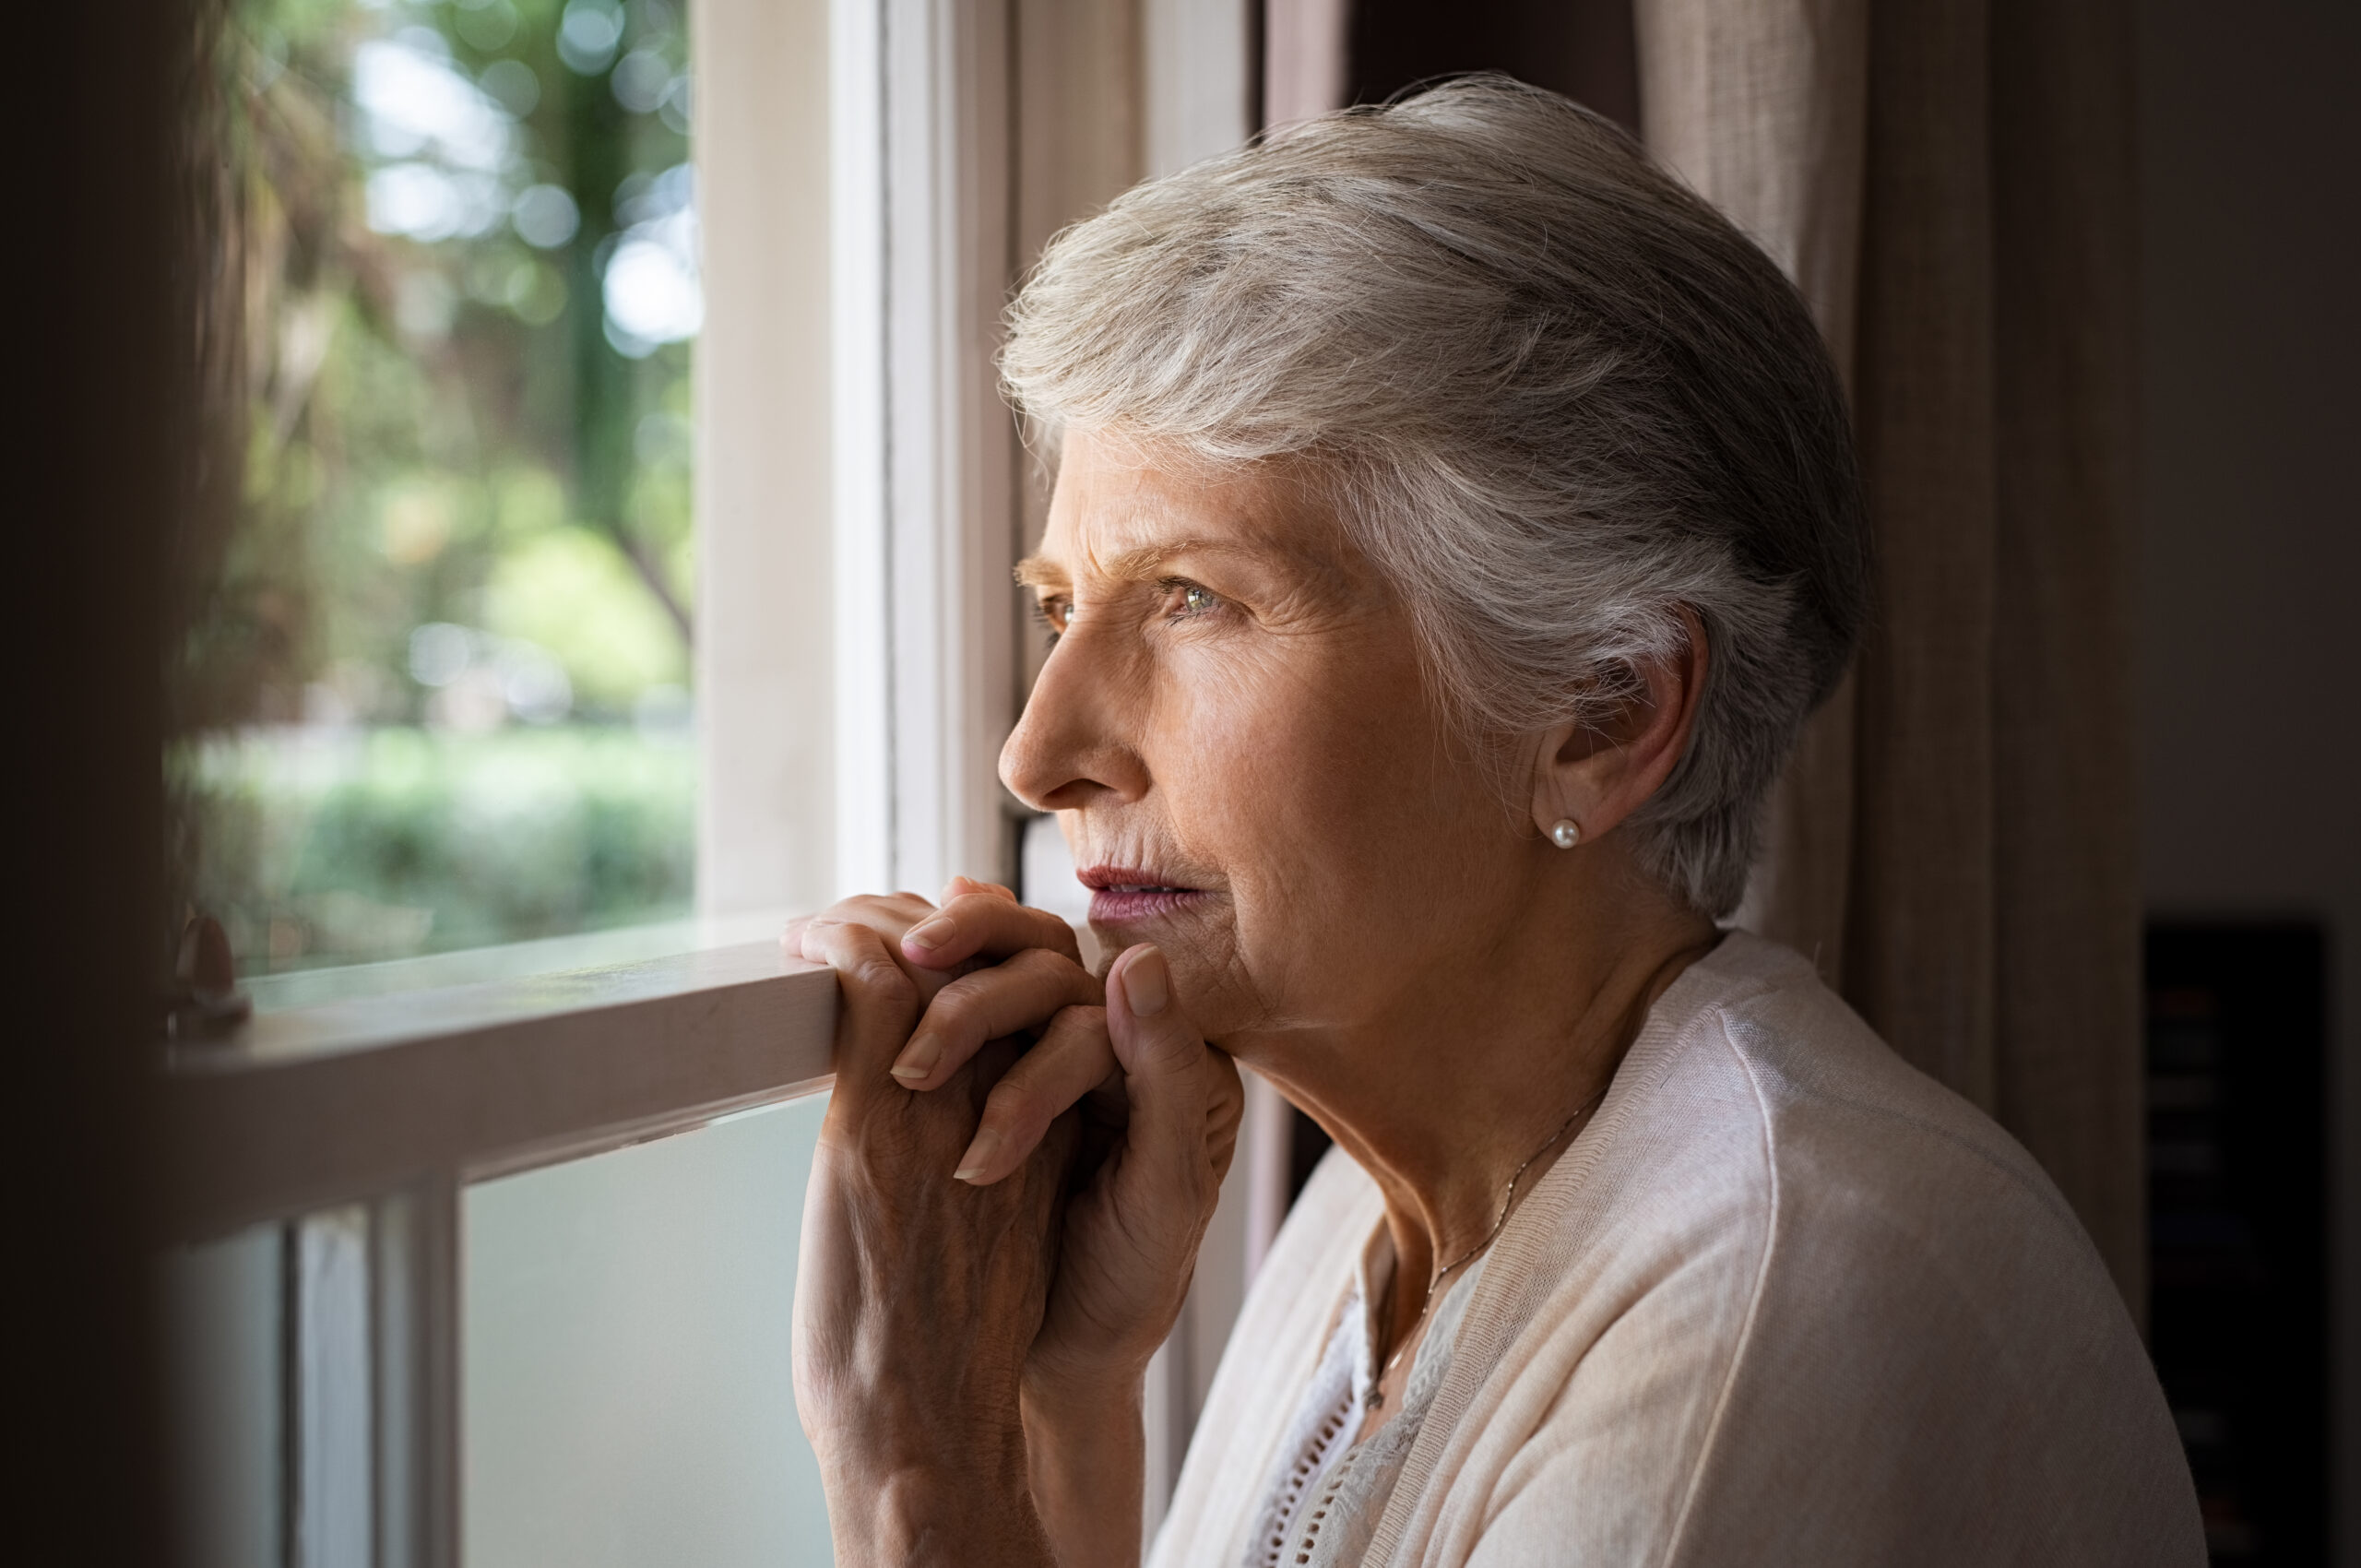 Older lady looking out of window